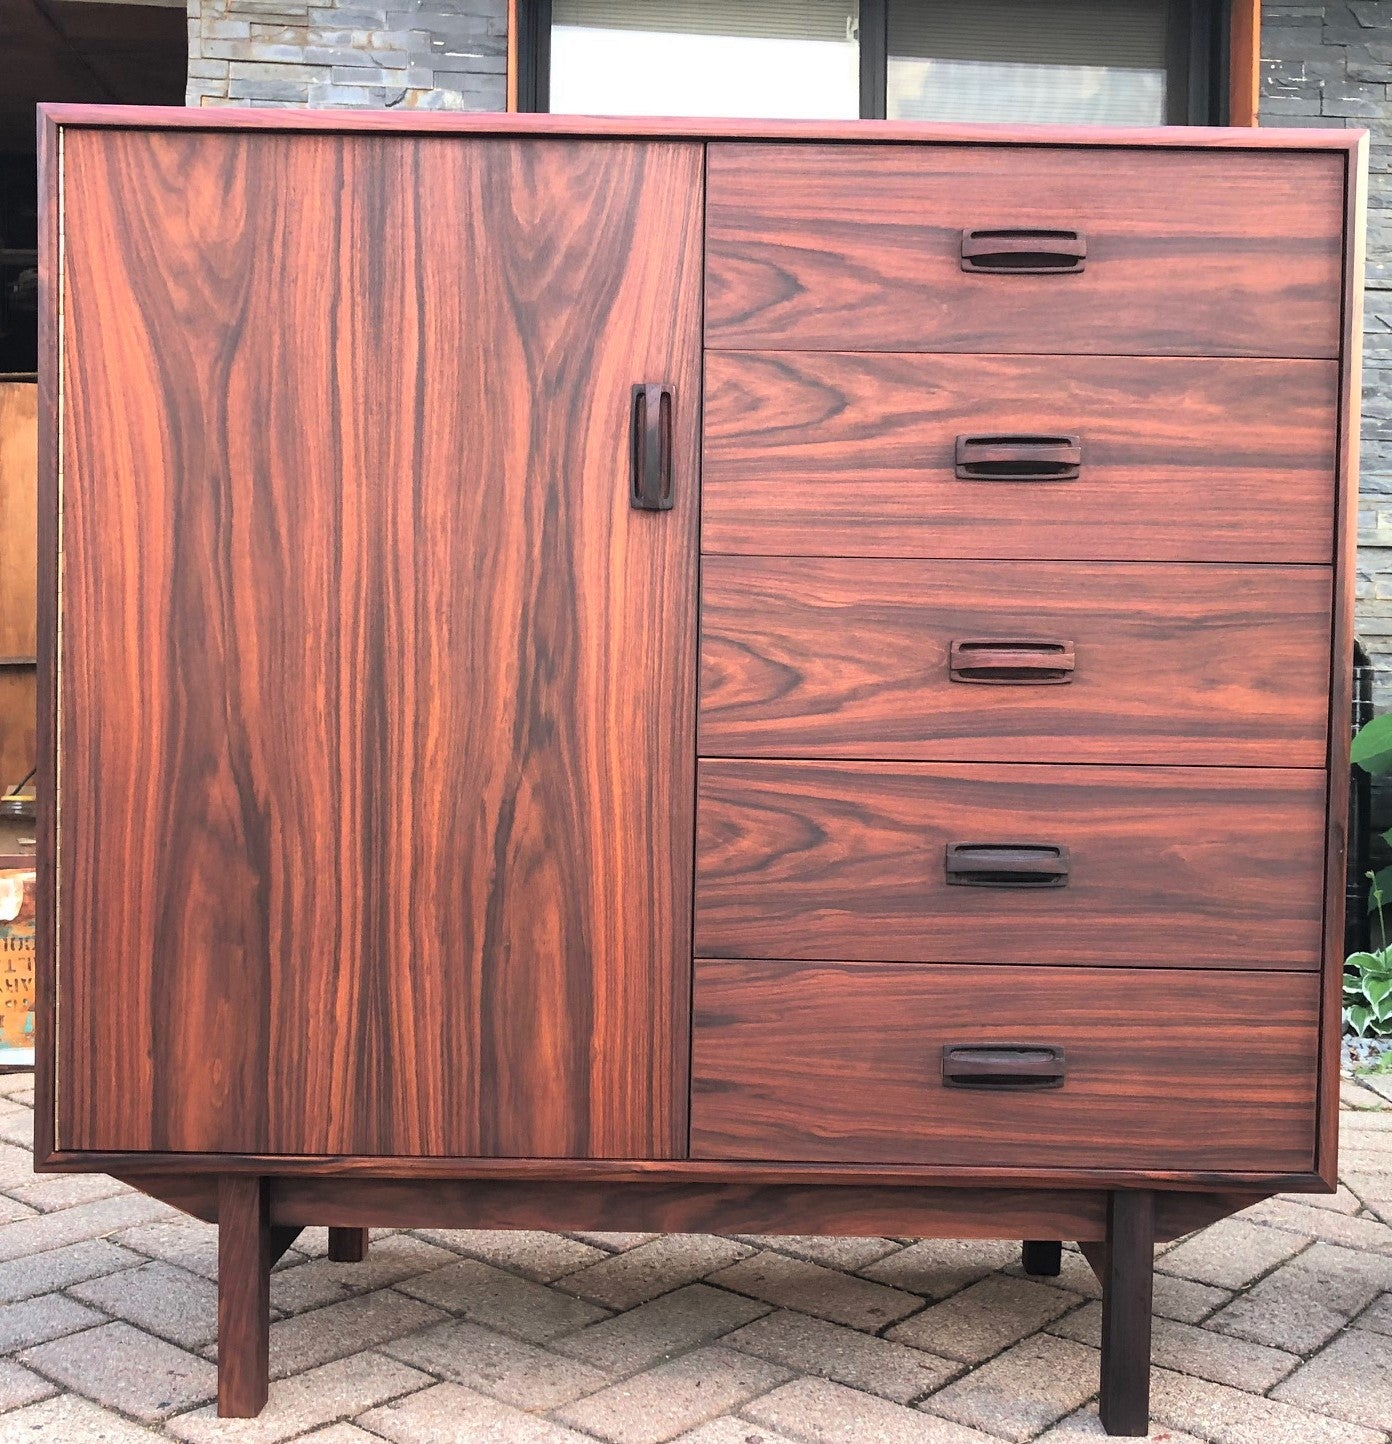 new product 63966 8bbb6 REFINISHED MCM Rosewood Bedroom set: Long dresser, tall dresser & platform  bed w floating nightstands Queen, PERFECT